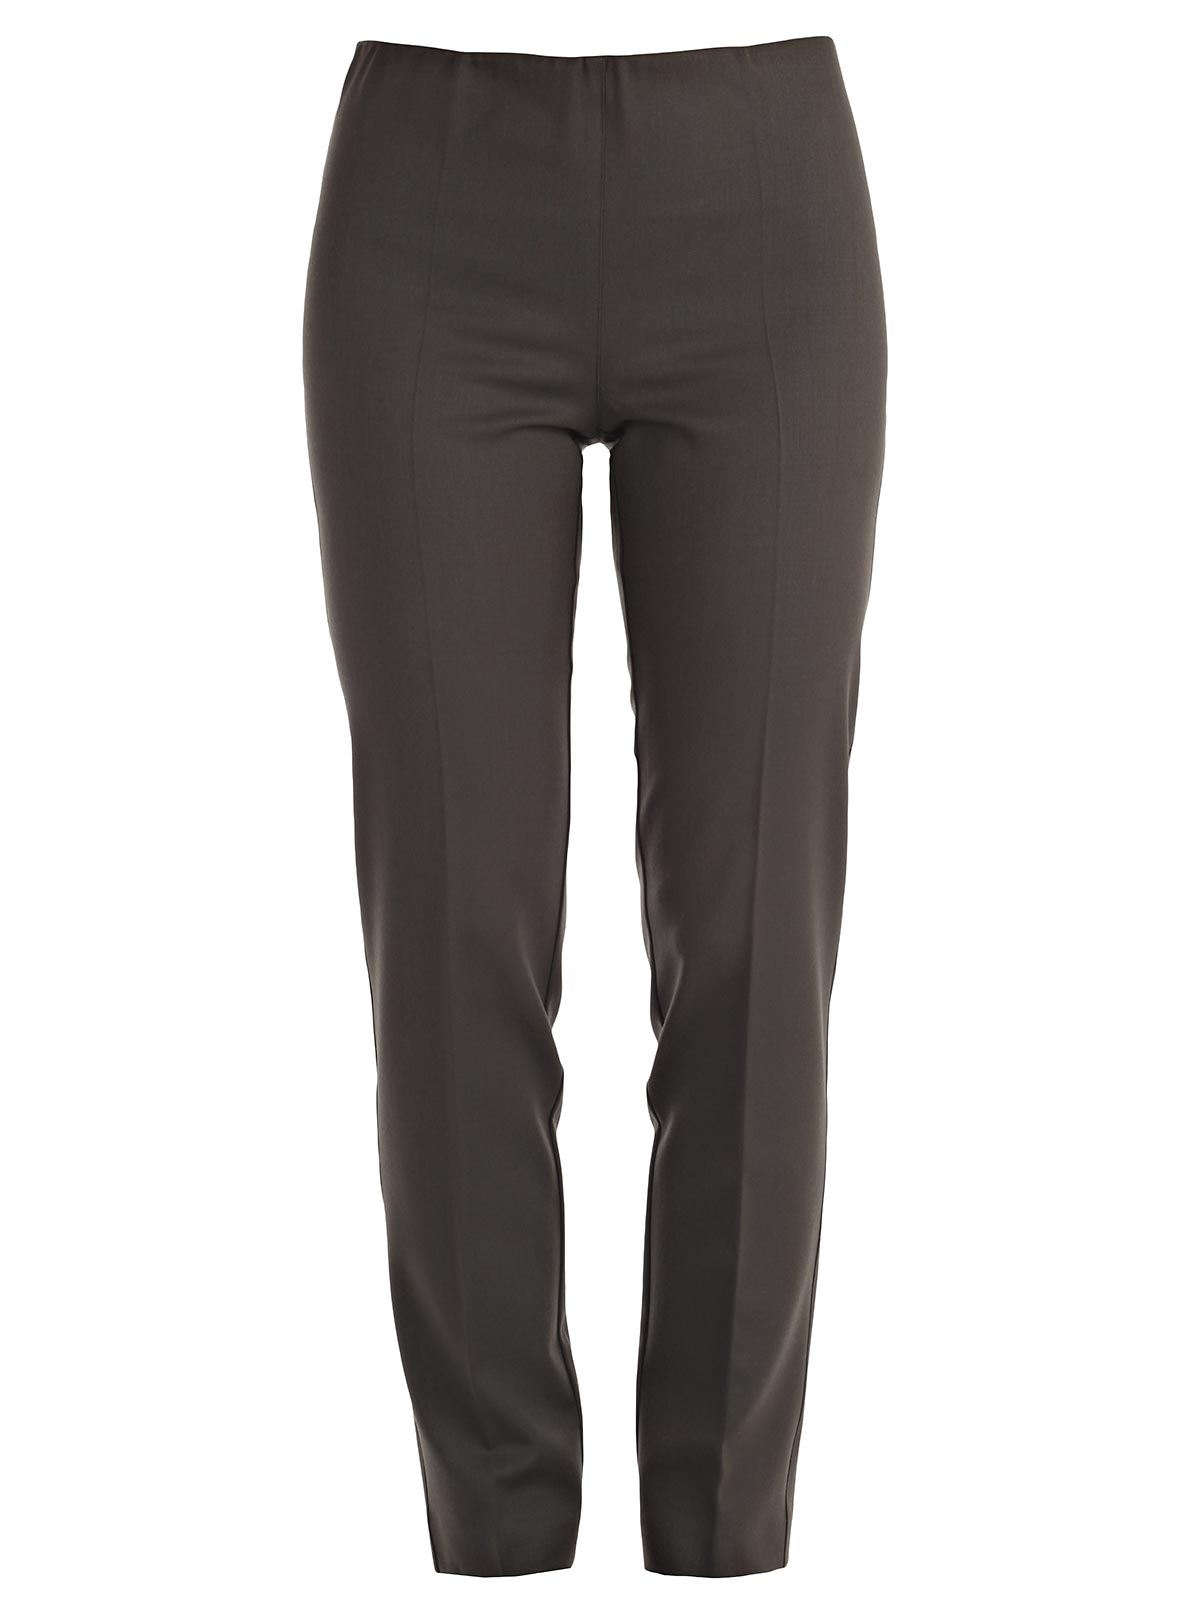 Picture of P.A.R.O.S.H. TROUSERS PANT. STRETTO ELASTICO  VITA GABARDINE STRETCH